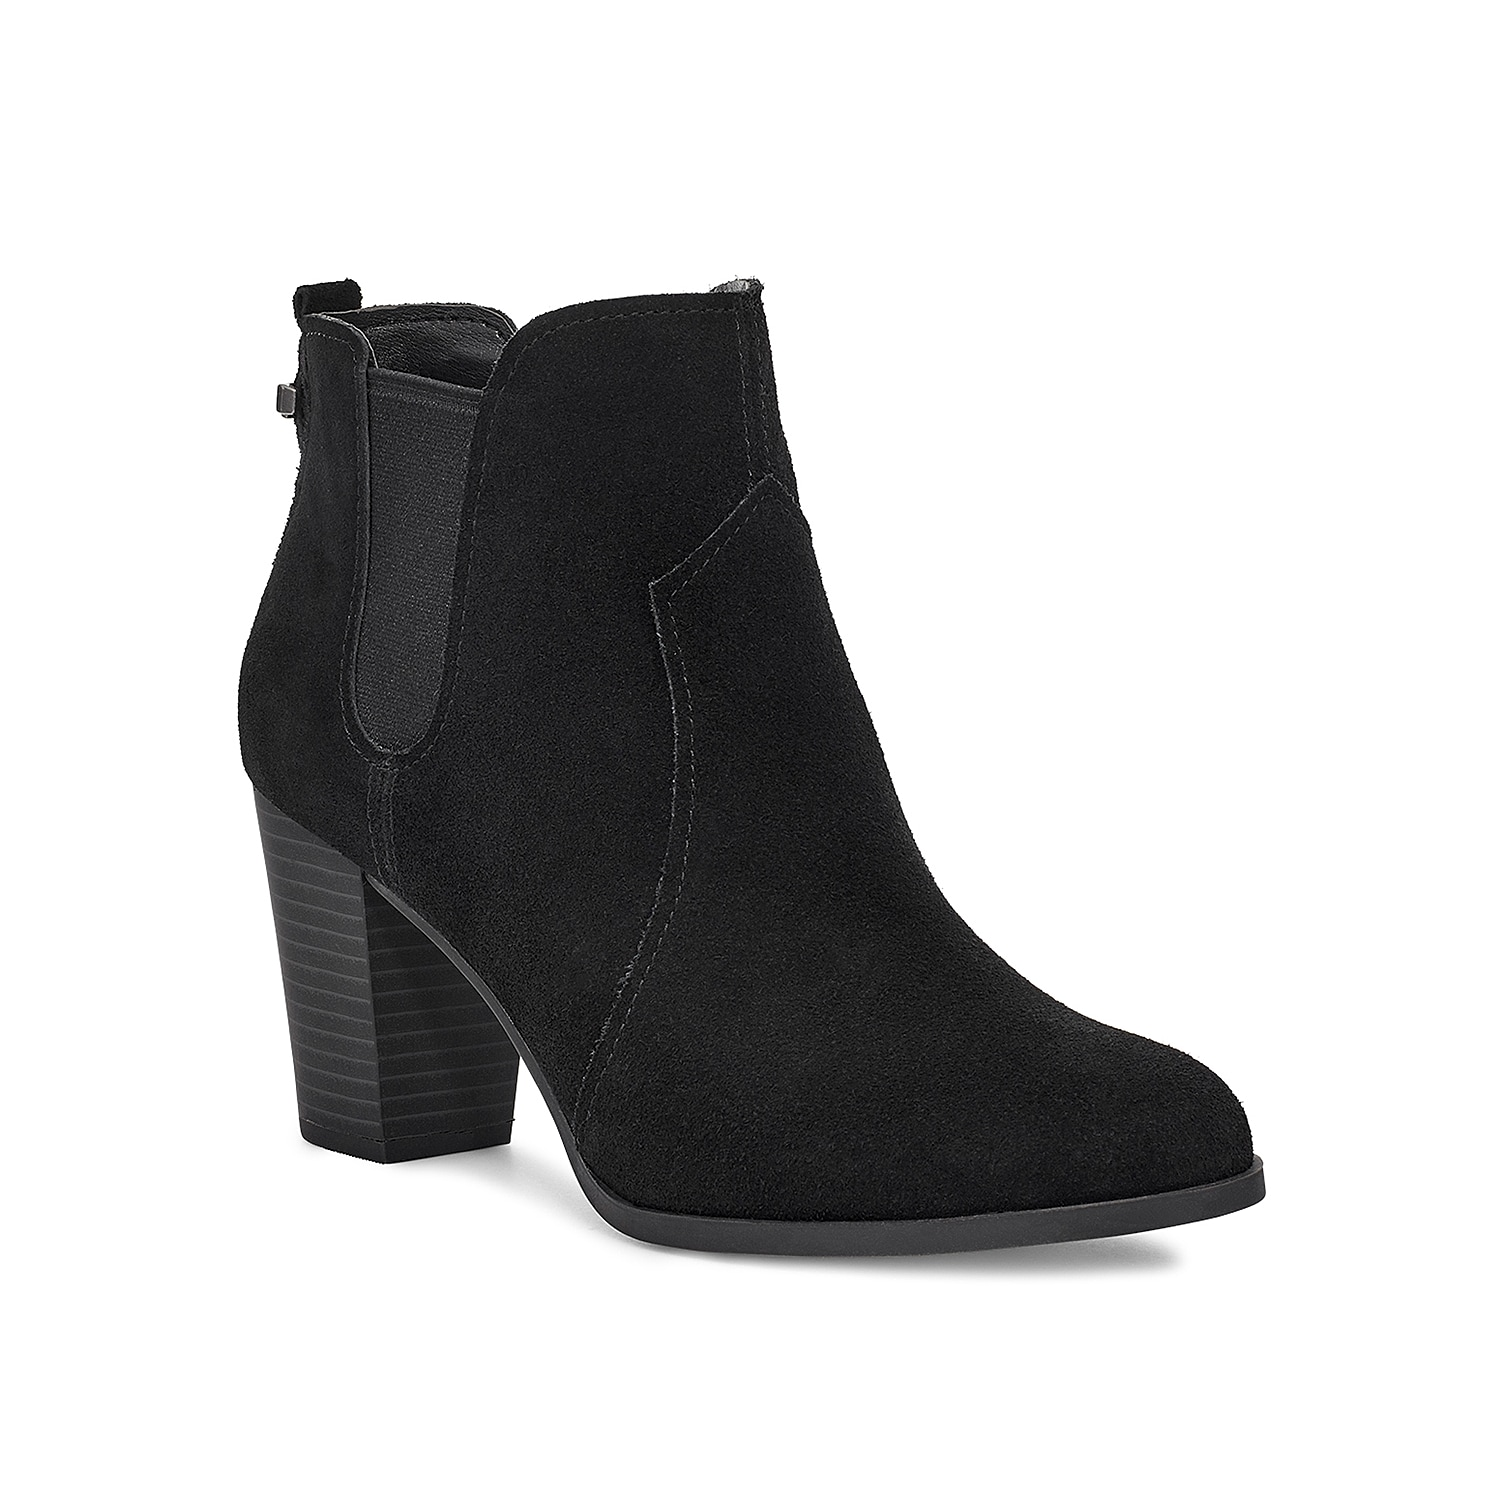 Make a classic impact with the Dvita Chelsea bootie from Koolaburra by Ugg. This ankle boot made of suede features side gore panels for a precise fit and stacked heel that gives it an elevated elegance.